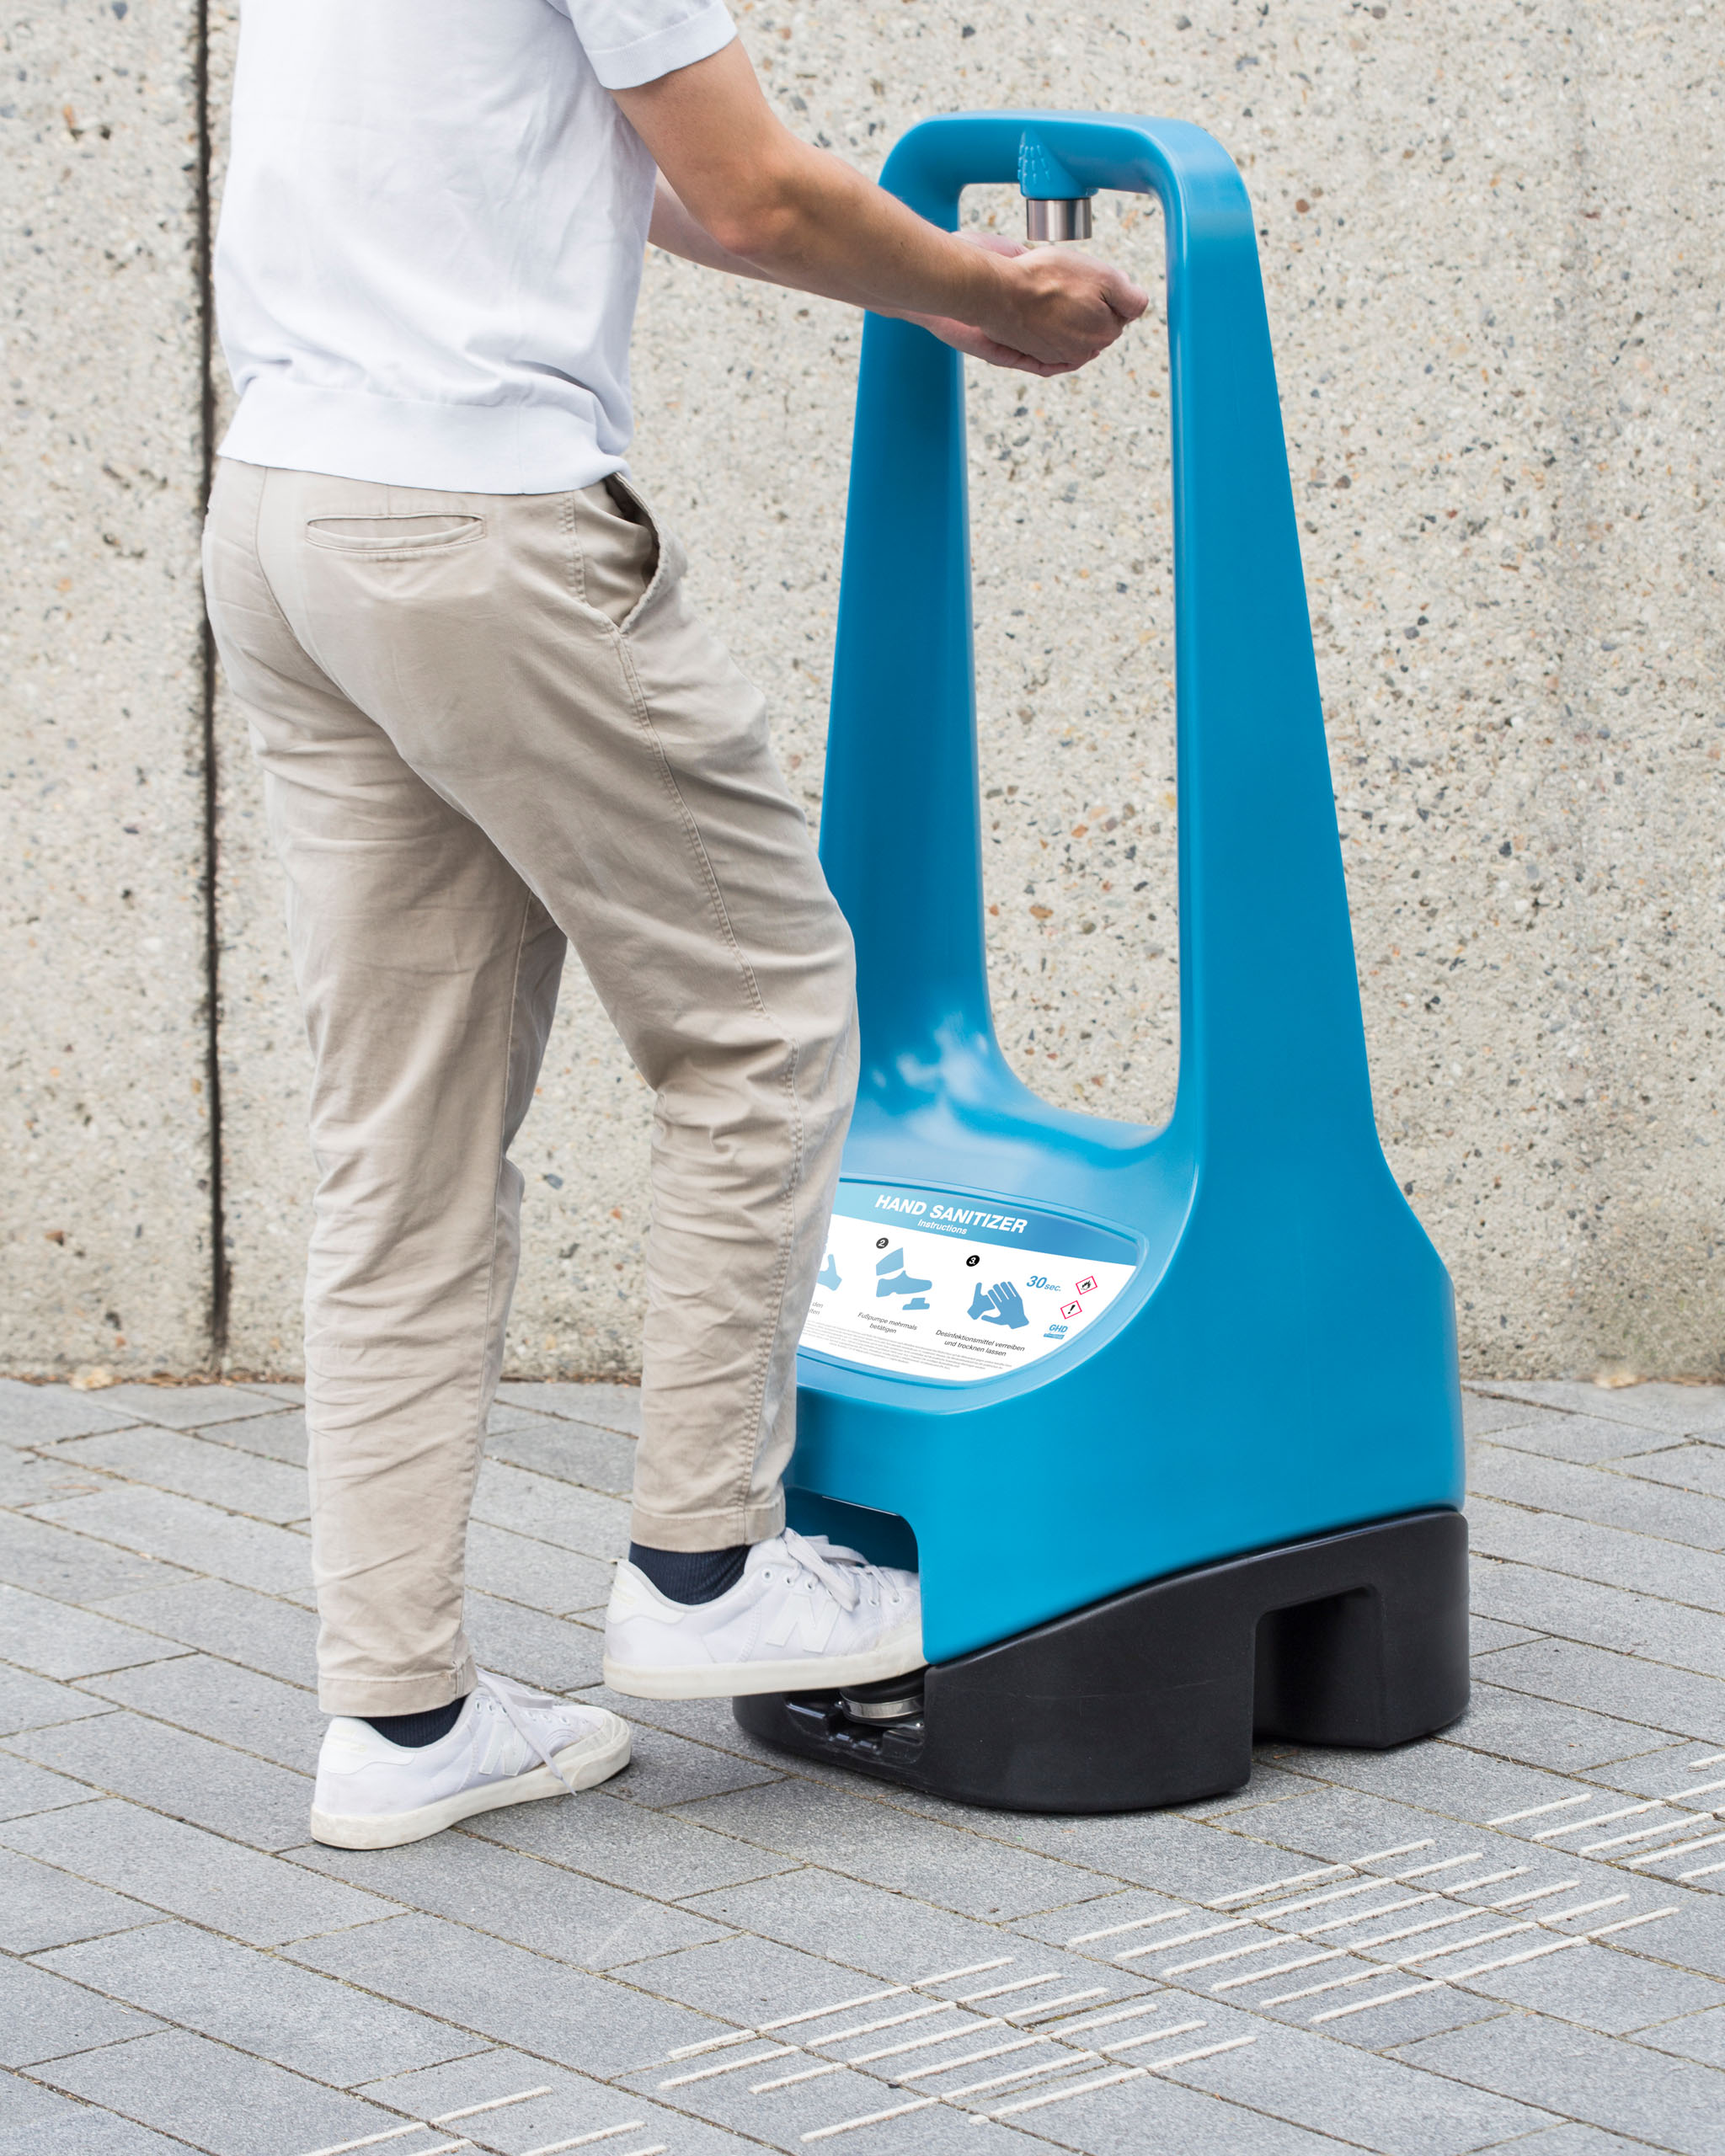 A person is using a foot pump to enable a Toi Care hand sanitizer standing outdoors.